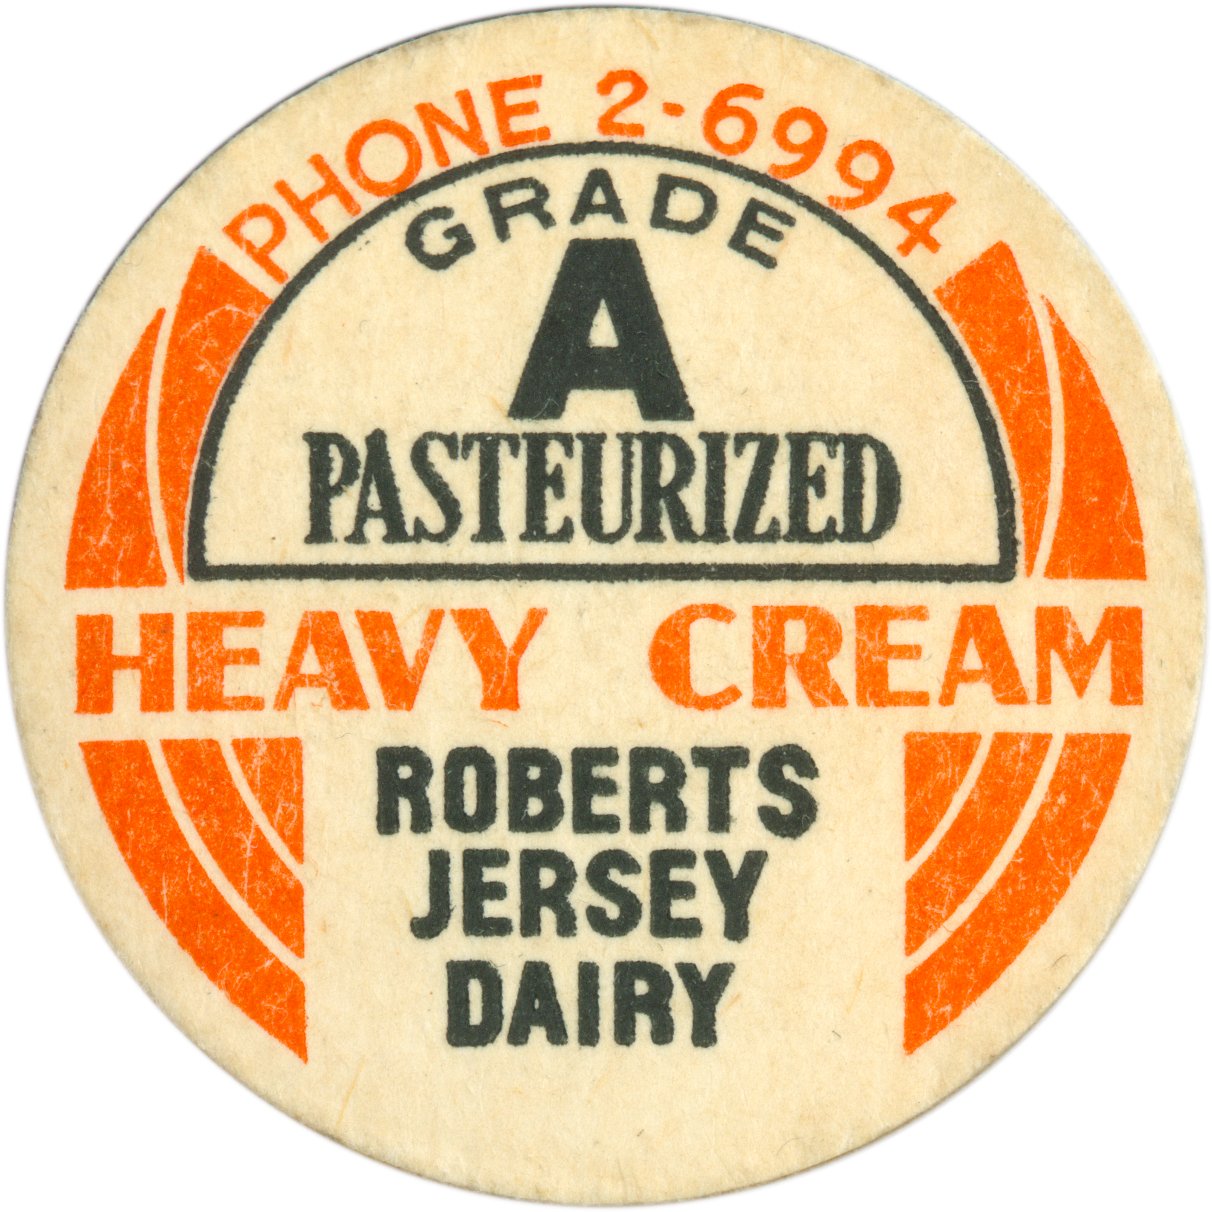 VernacularCircles_0001s_0004_Roberts-Jersey-Dairy---Grade-A-Pasterurized-Heavy-Cream.png